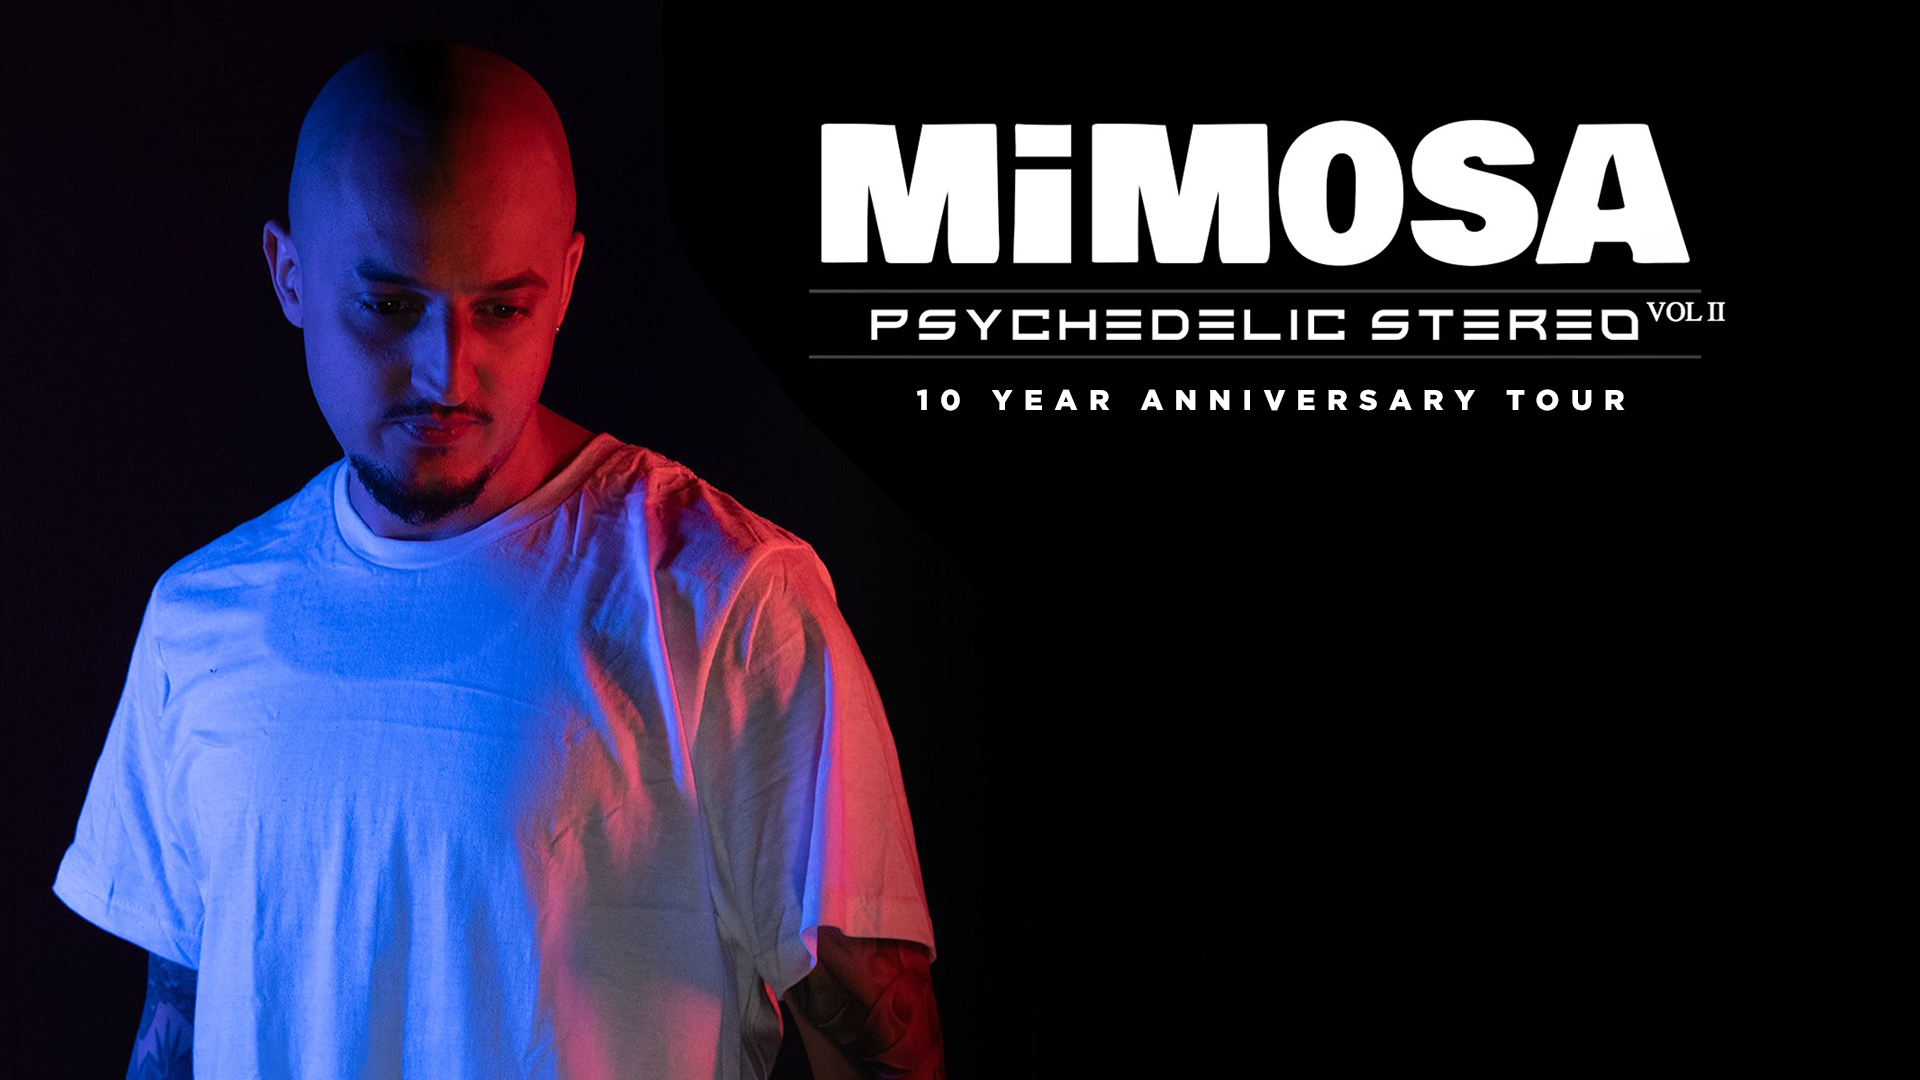 MiMOSA Psychedelic Stereo Live at the Rose Music Hall